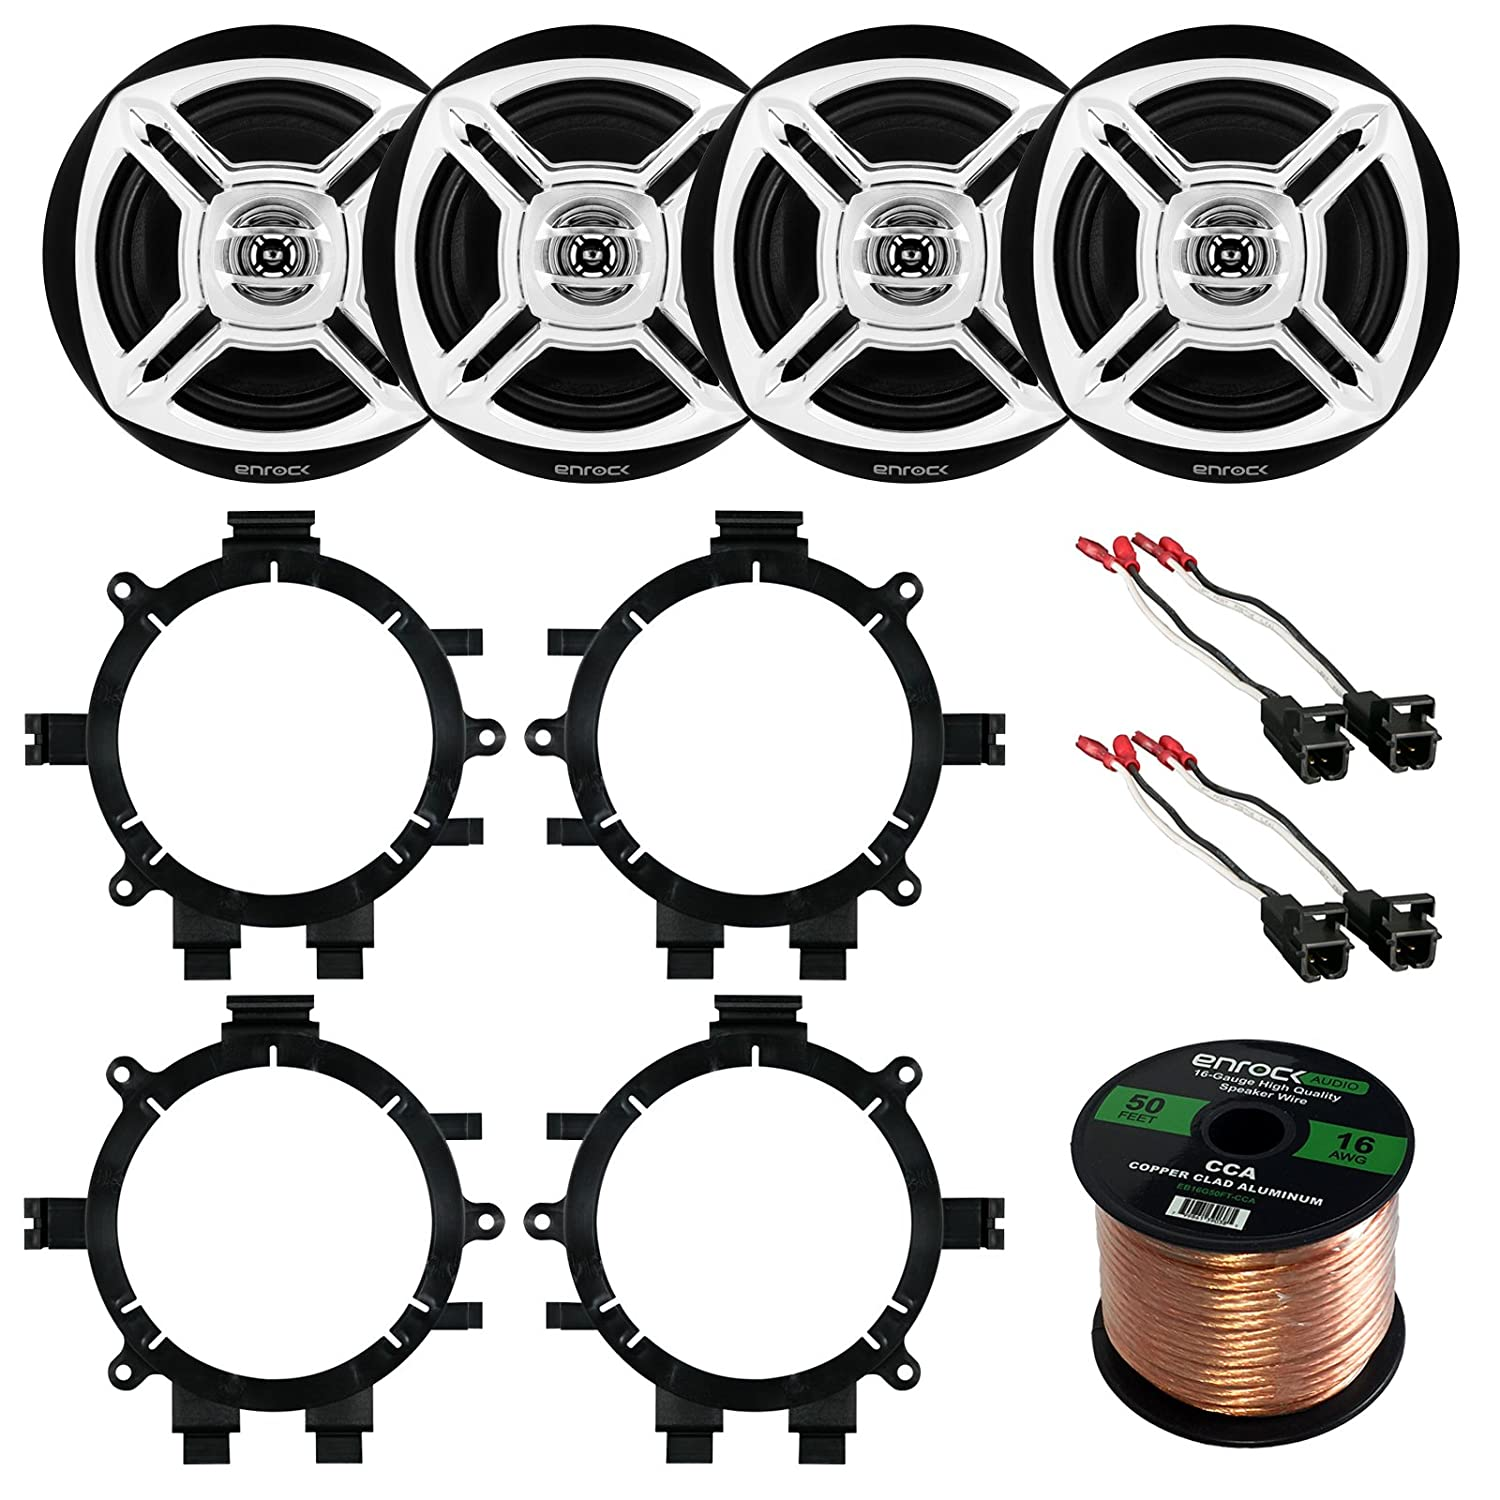 "Car Speaker Bundle Combo: 2 Pairs of Enrock EKMR1672C 6.5"" Inch 200 Watts 2-Way Black/Chrome Car Stereo Component Speaker W/ Adapter Brackets + Wiring Harness + Enrock 50 Foot 16 Gauge Speaker Wire"